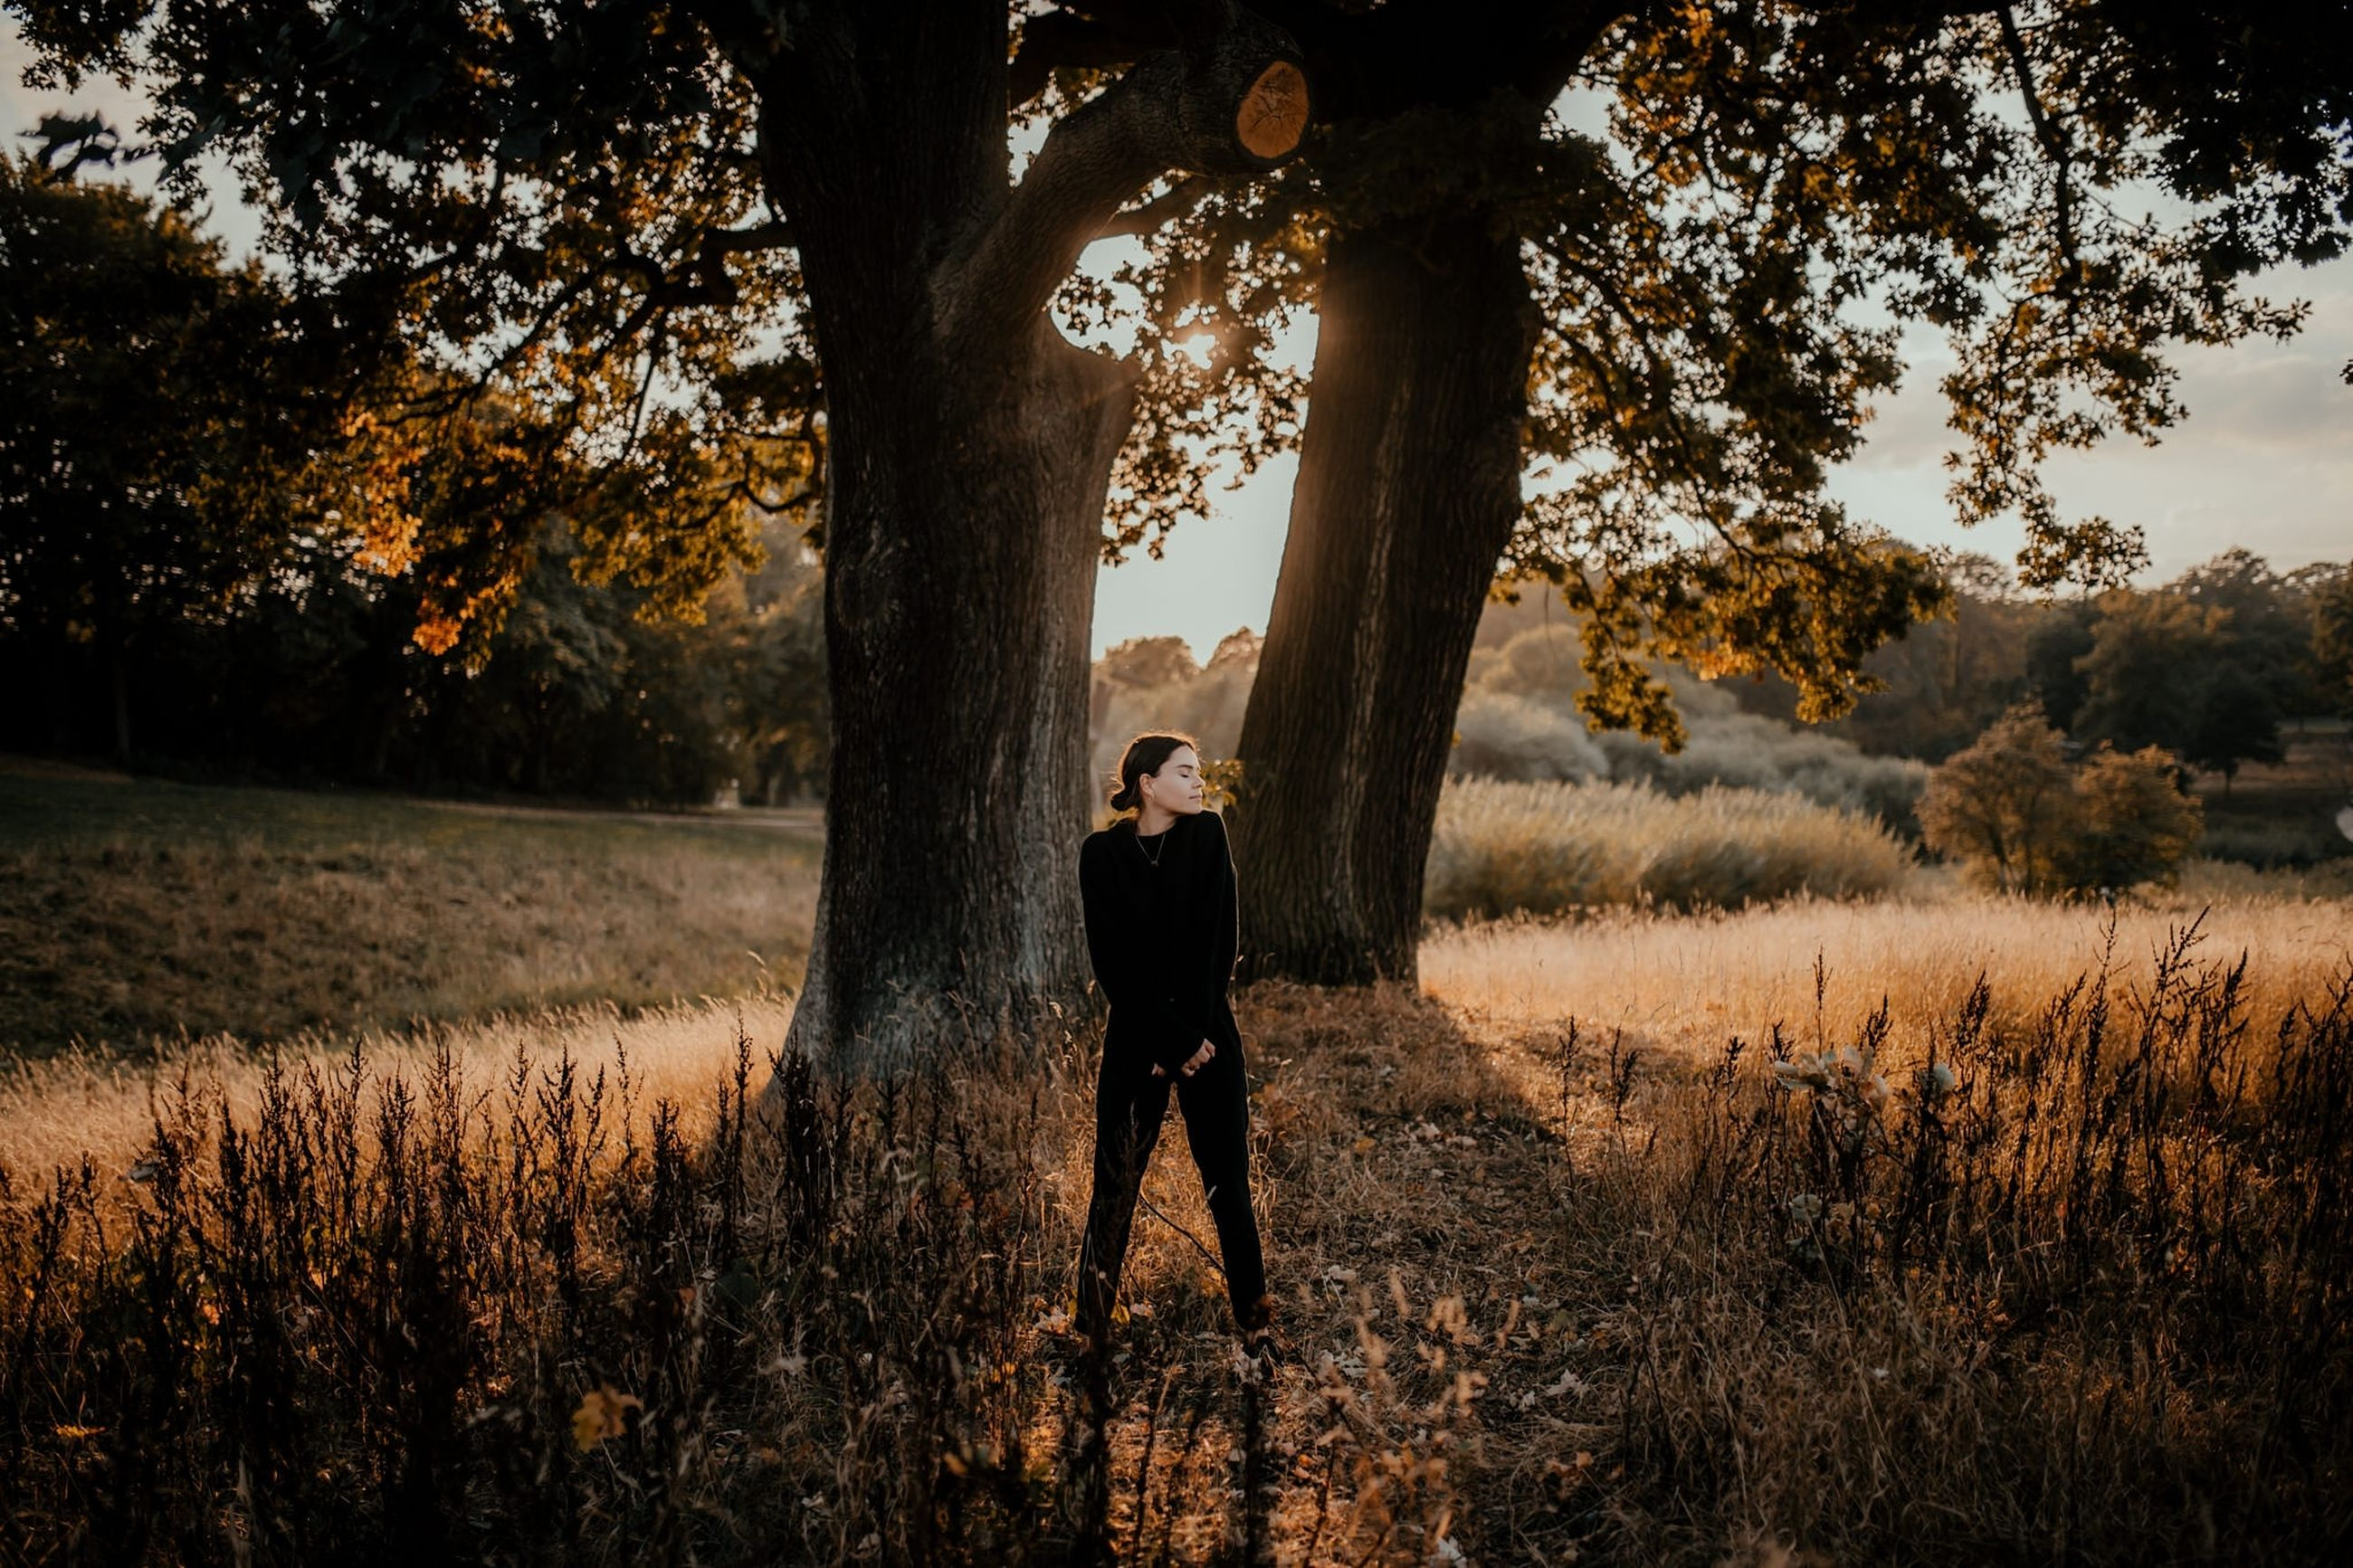 tree, plant, one person, real people, standing, land, lifestyles, field, growth, leisure activity, nature, grass, full length, young adult, non-urban scene, beauty in nature, casual clothing, day, tranquility, outdoors